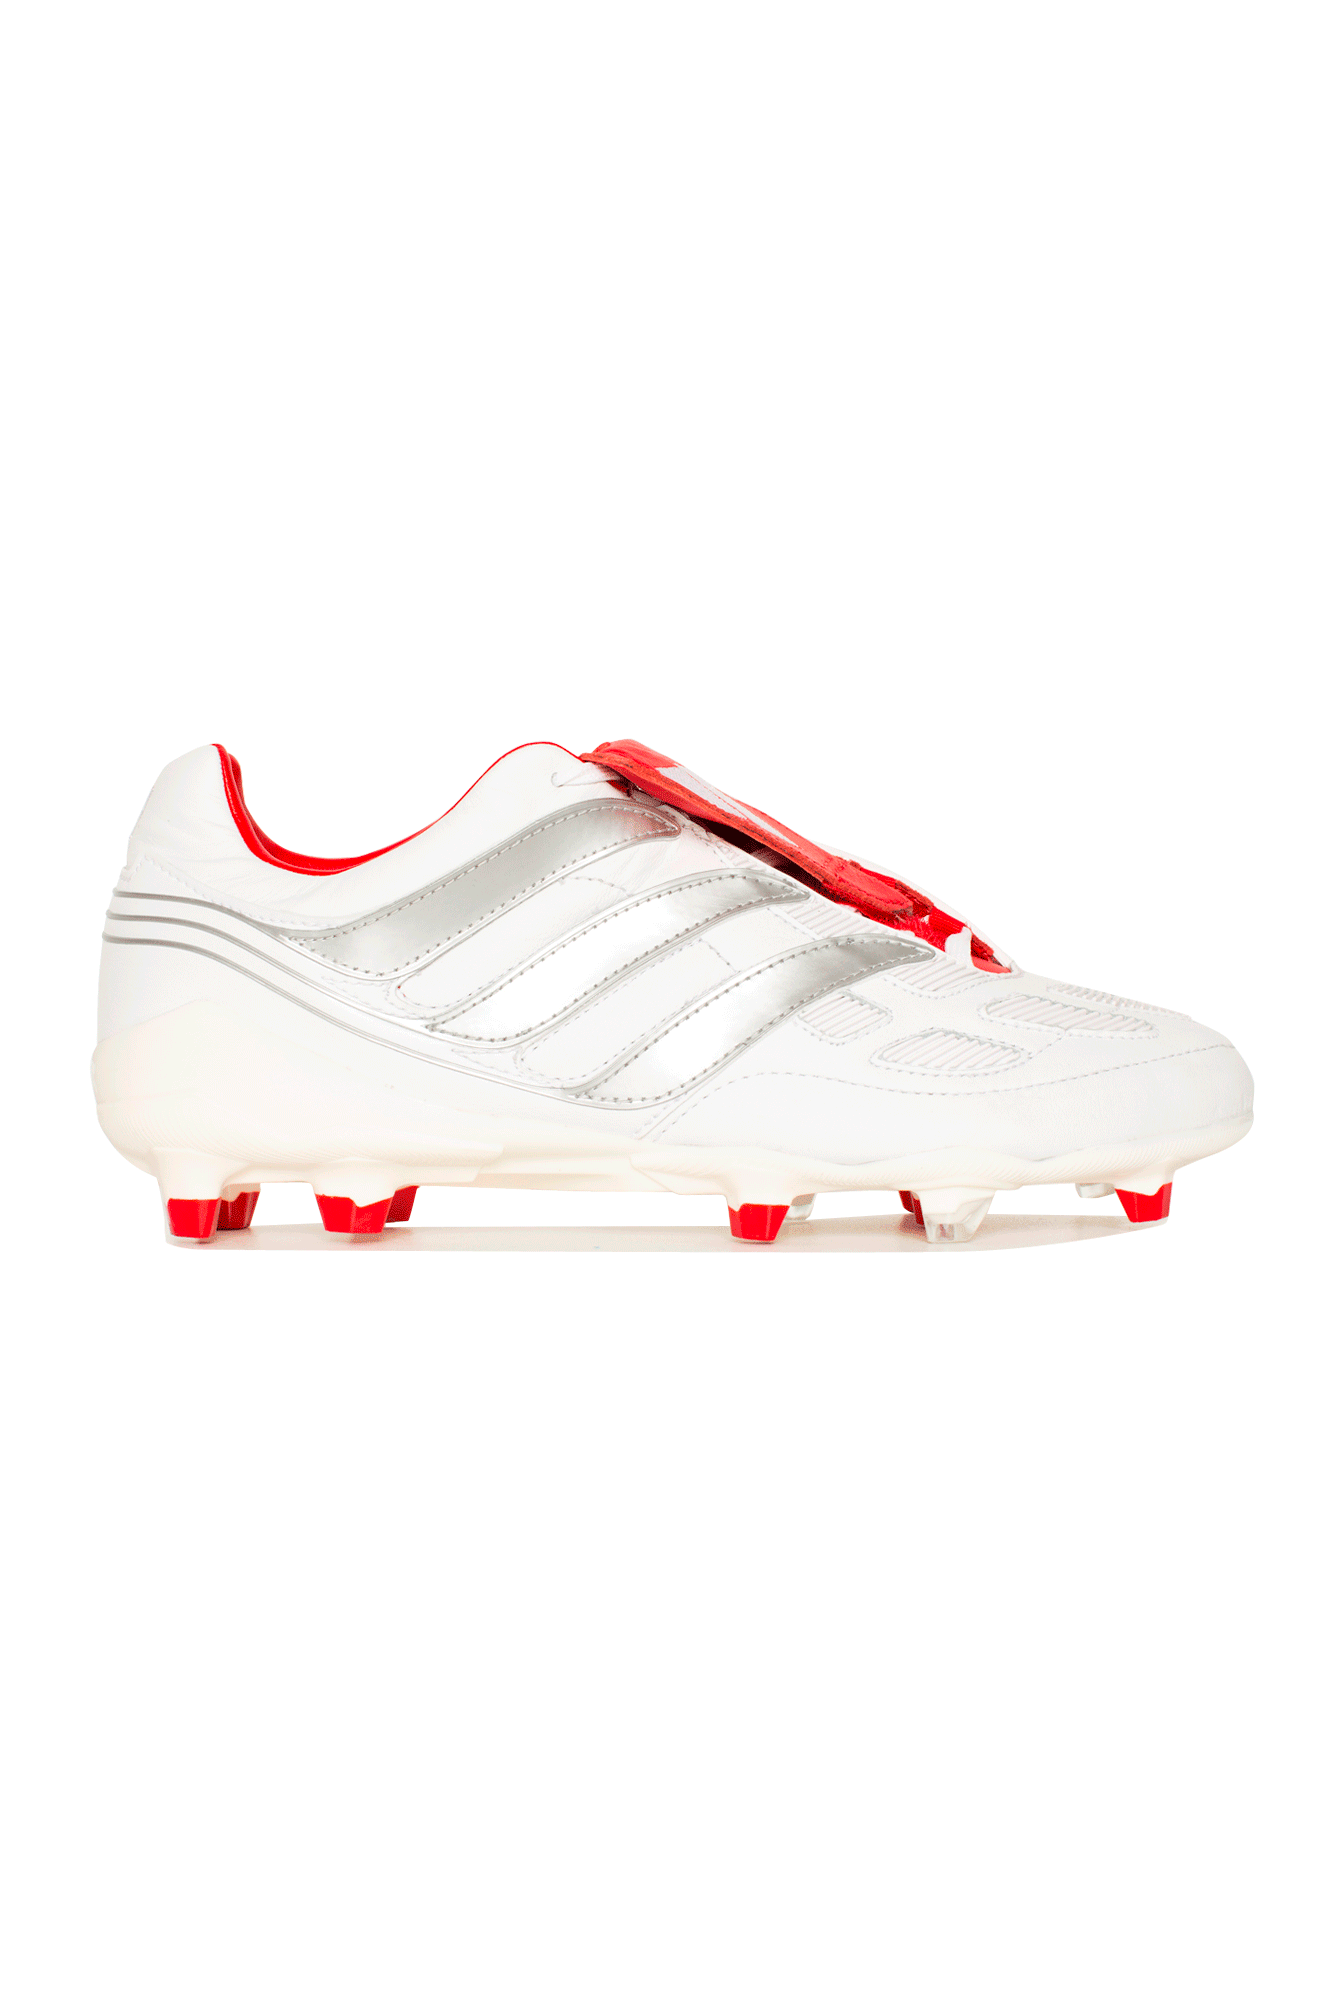 Adidas Originals Sneakers Predator Precision FG David Beckham White F97223#000#C0006#7 - One Block Down